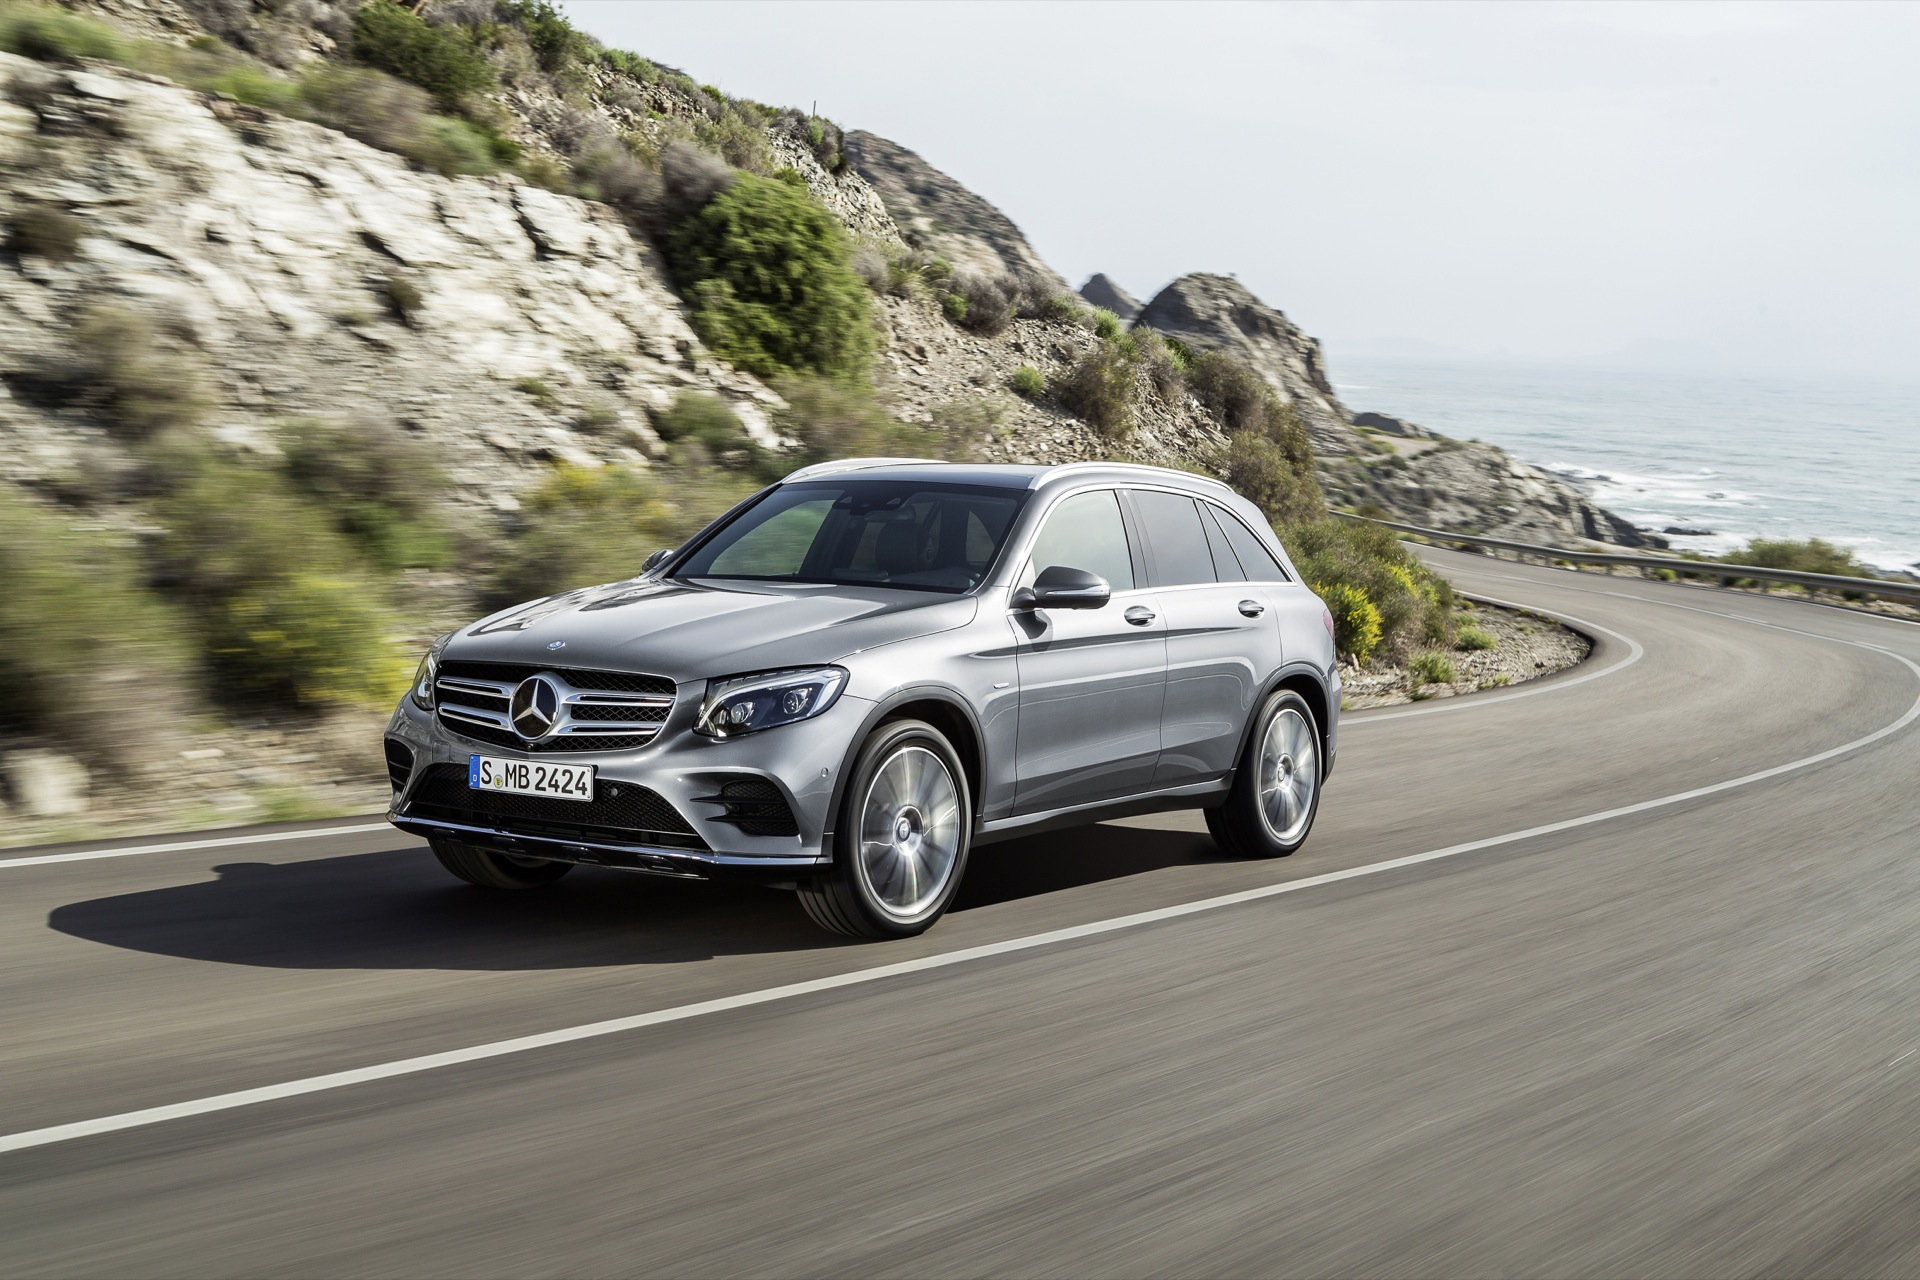 2016-mercedes-benz-glc-class_100514802_h Interesting Info About Glc forum